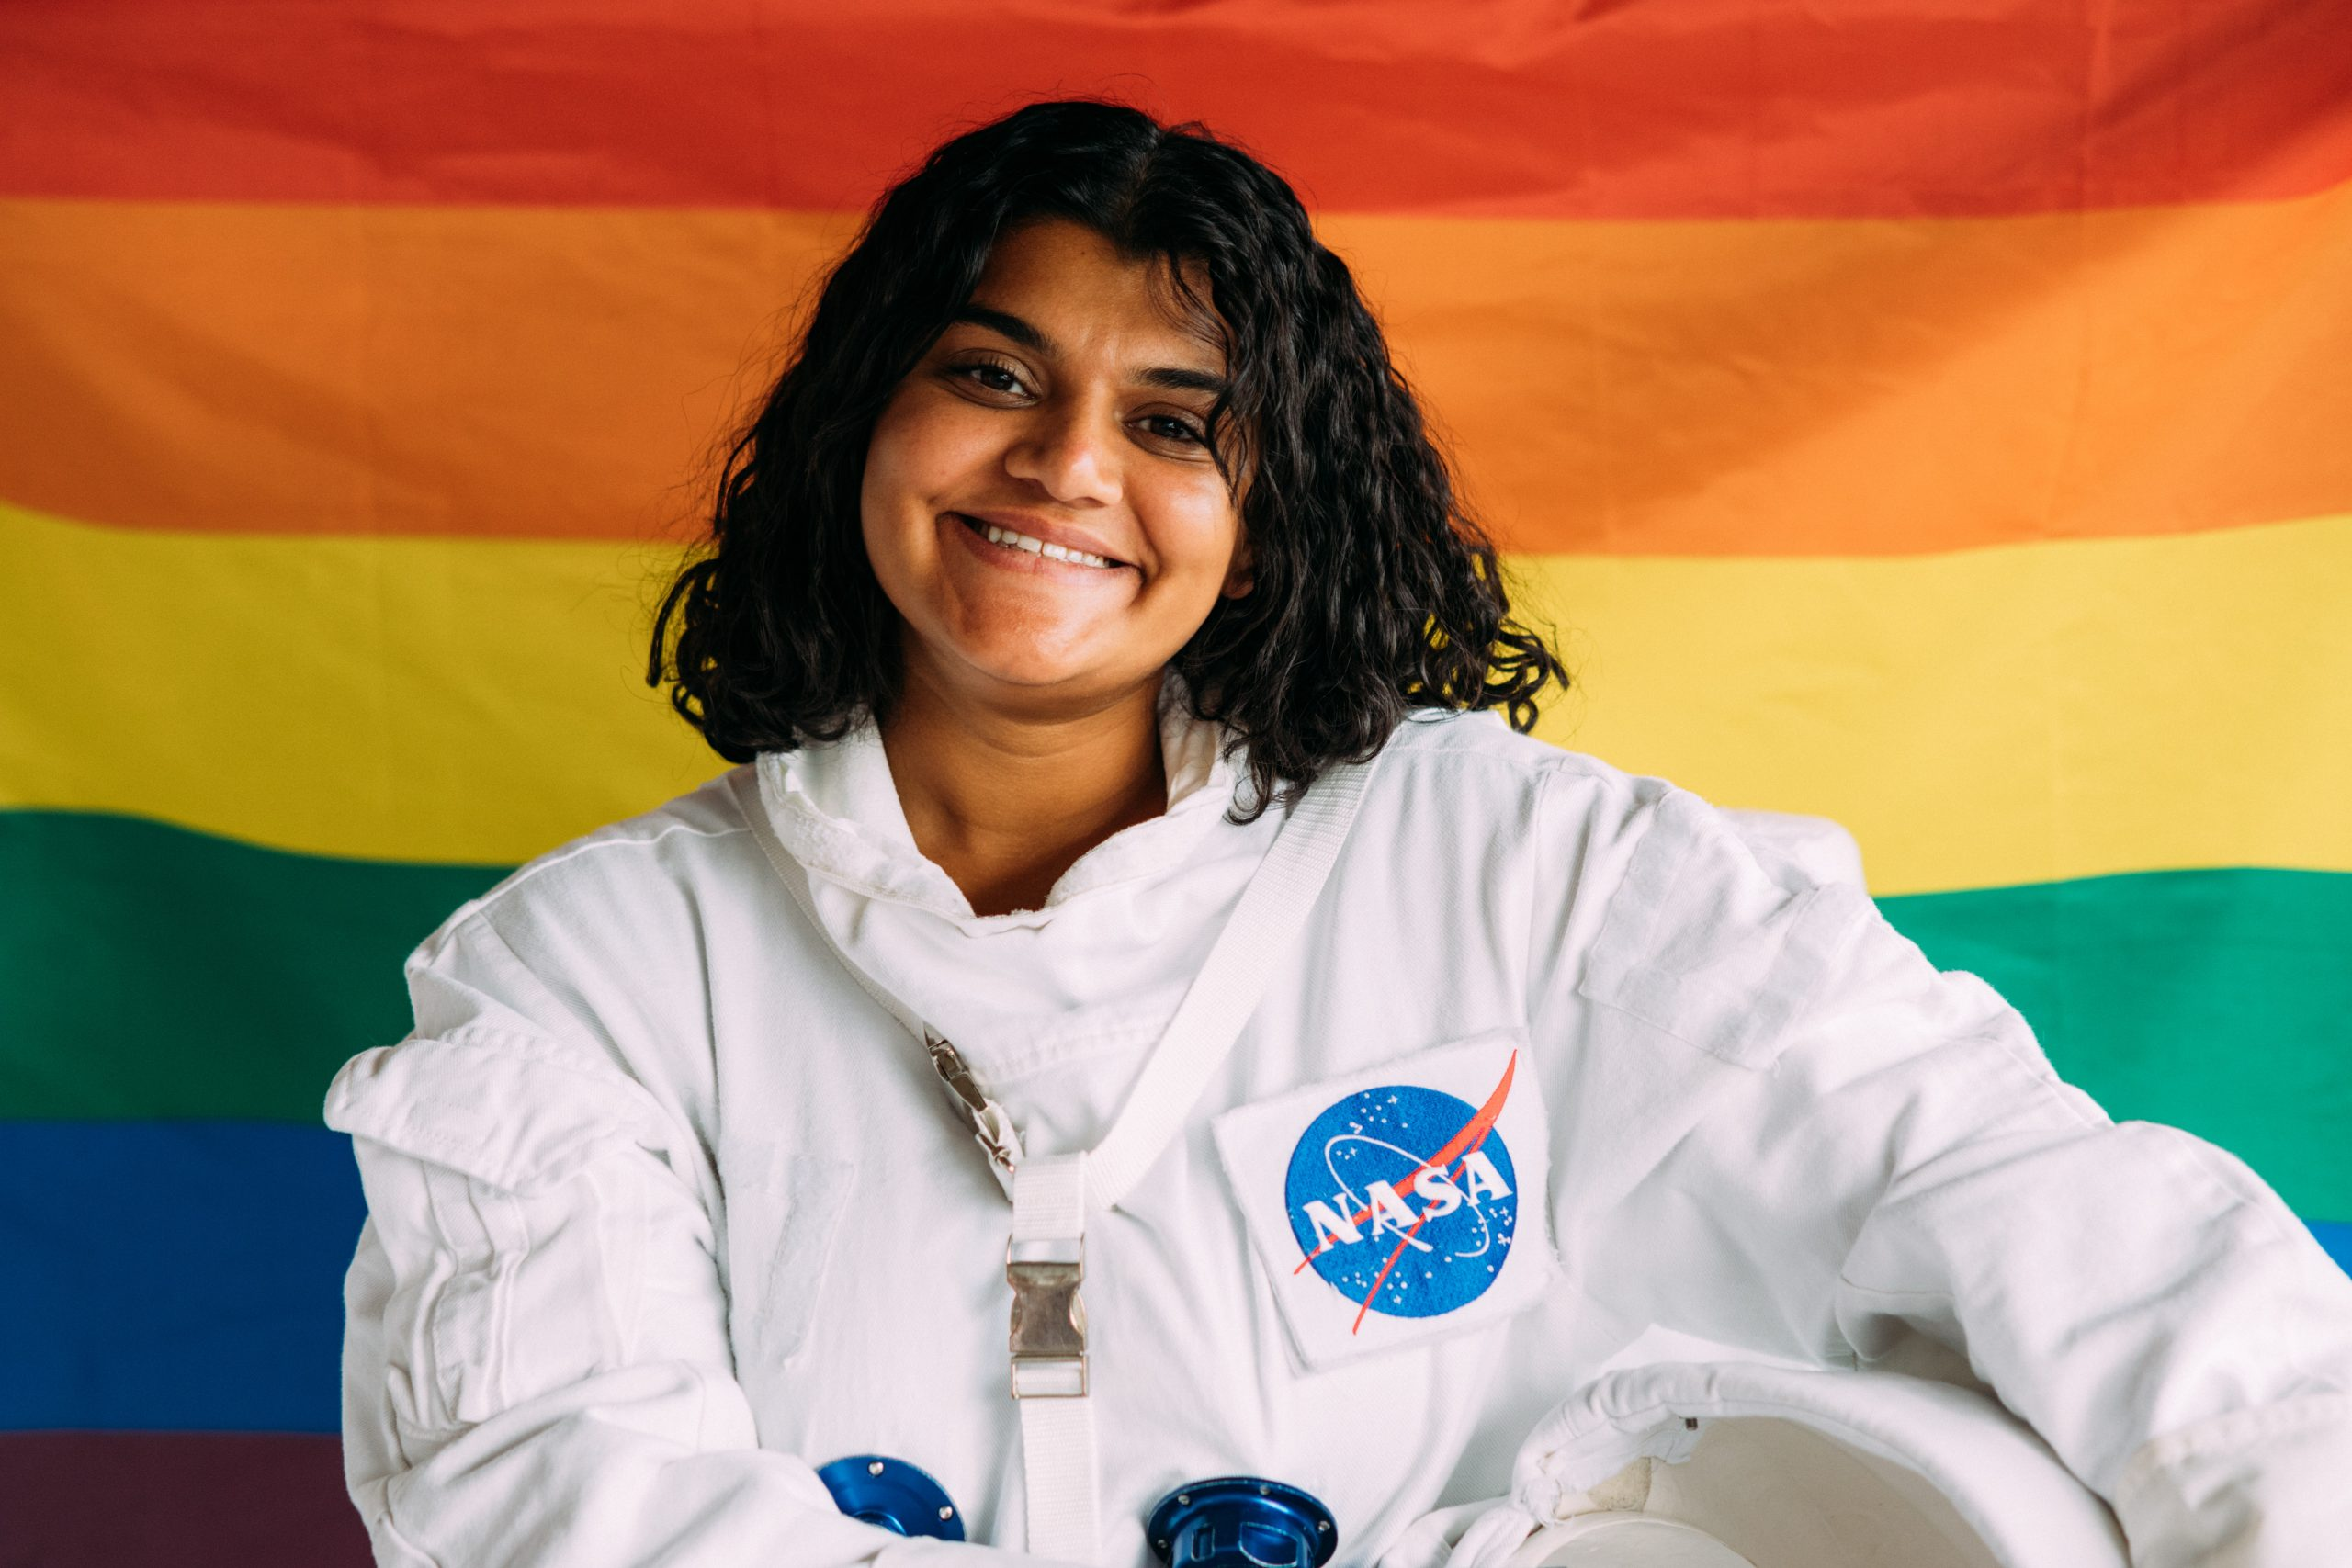 Person in an astronaut suit standing in front of LGBT flag